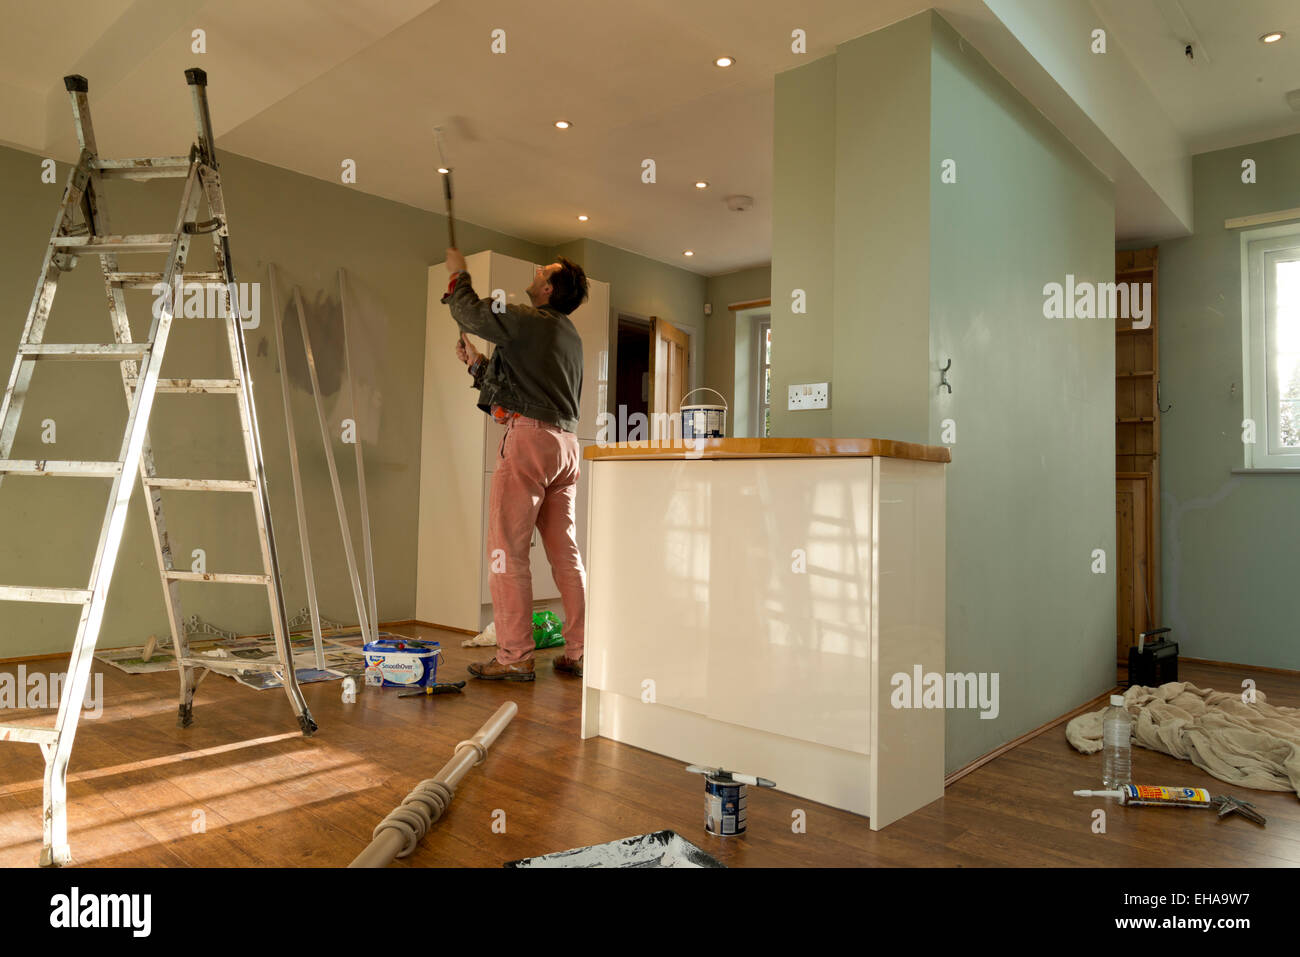 Man using a paint roller on the ceiling. Decorating the kitchen of a house. - Stock Image